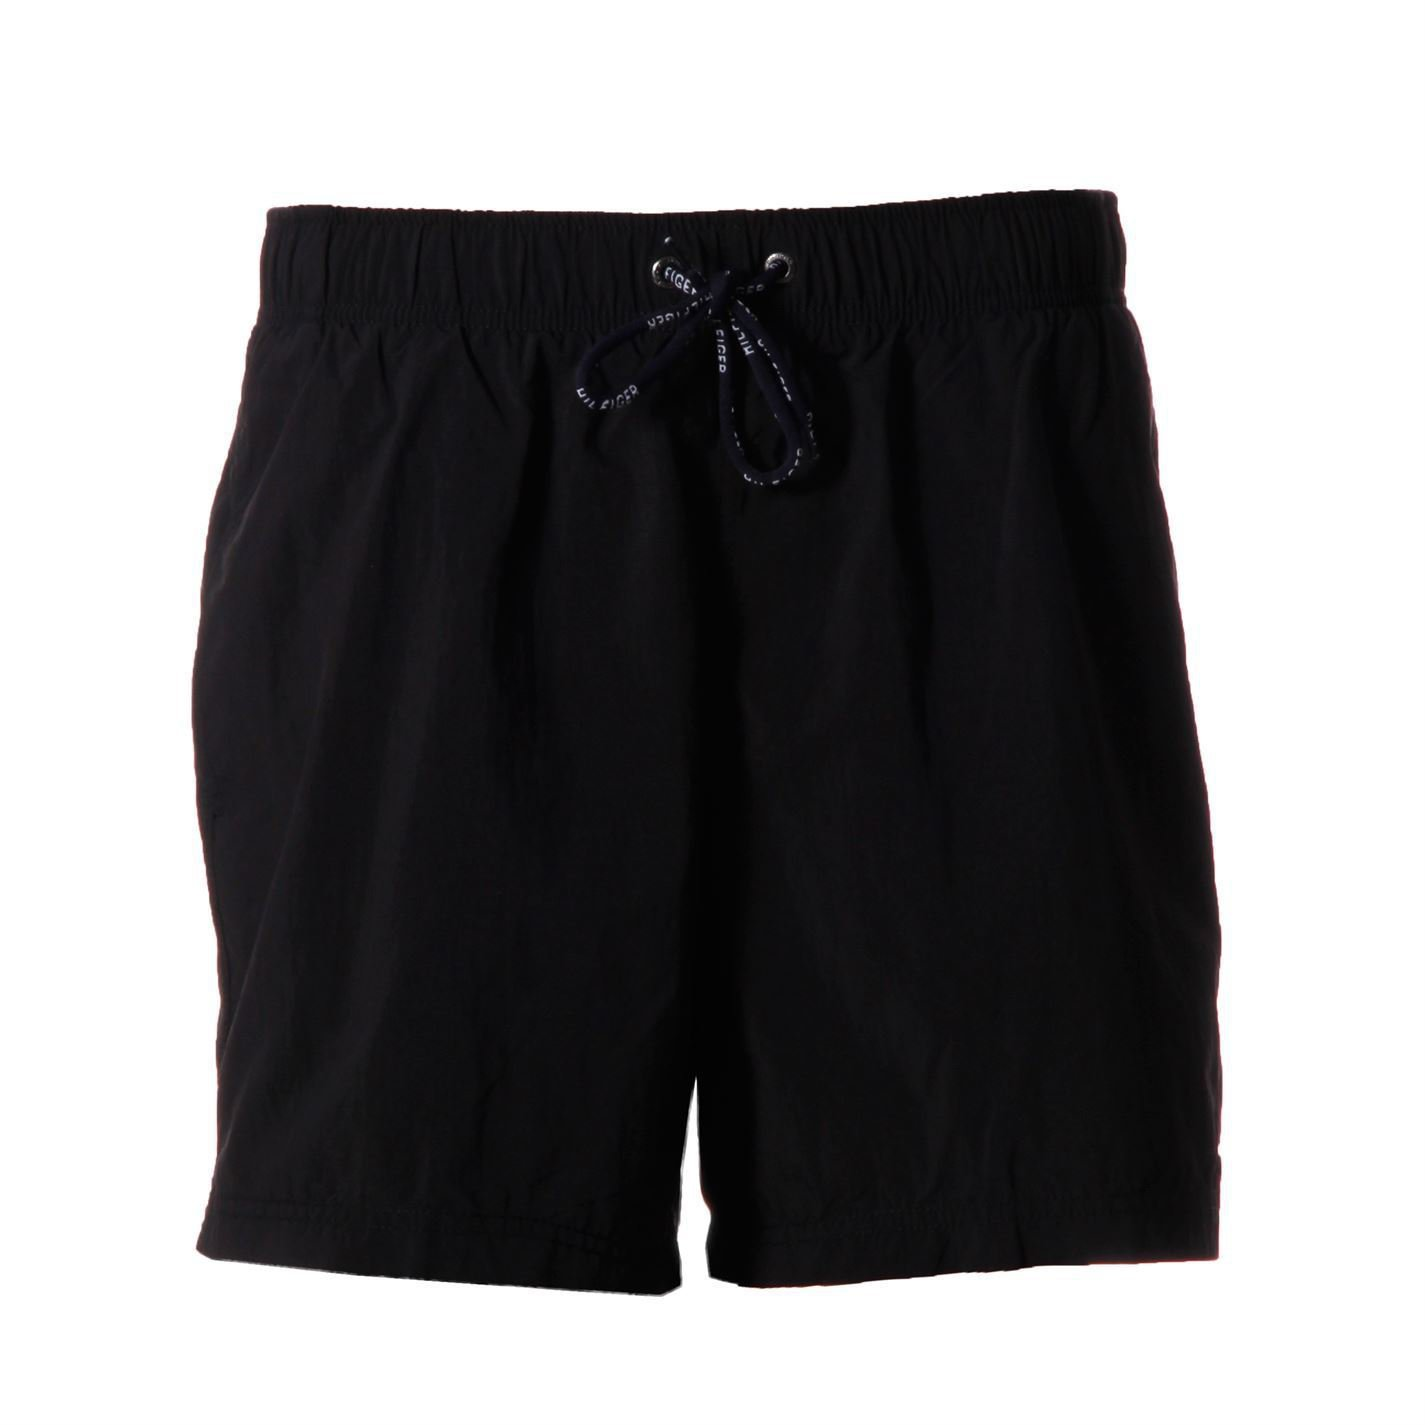 Tommy Hilfiger Mens Solid Trunk Swimming Pool Beach Boxer Bottoms Clothing